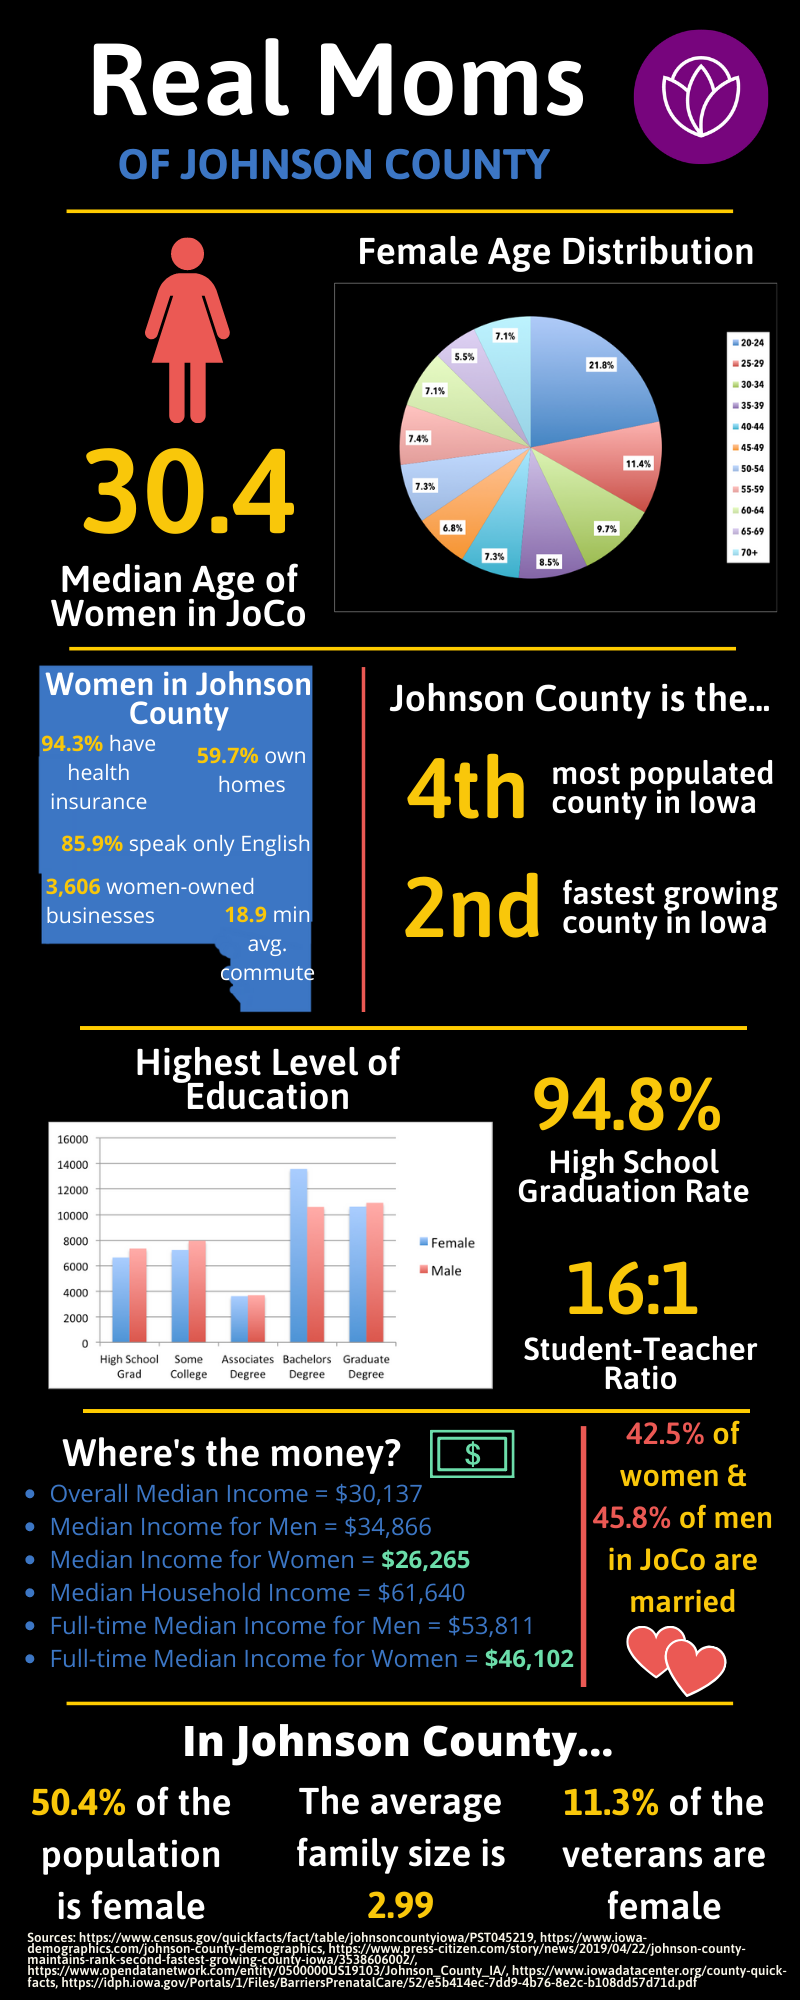 An image showing a statistical summary of teh real mom and women of Johnson County, Iowa